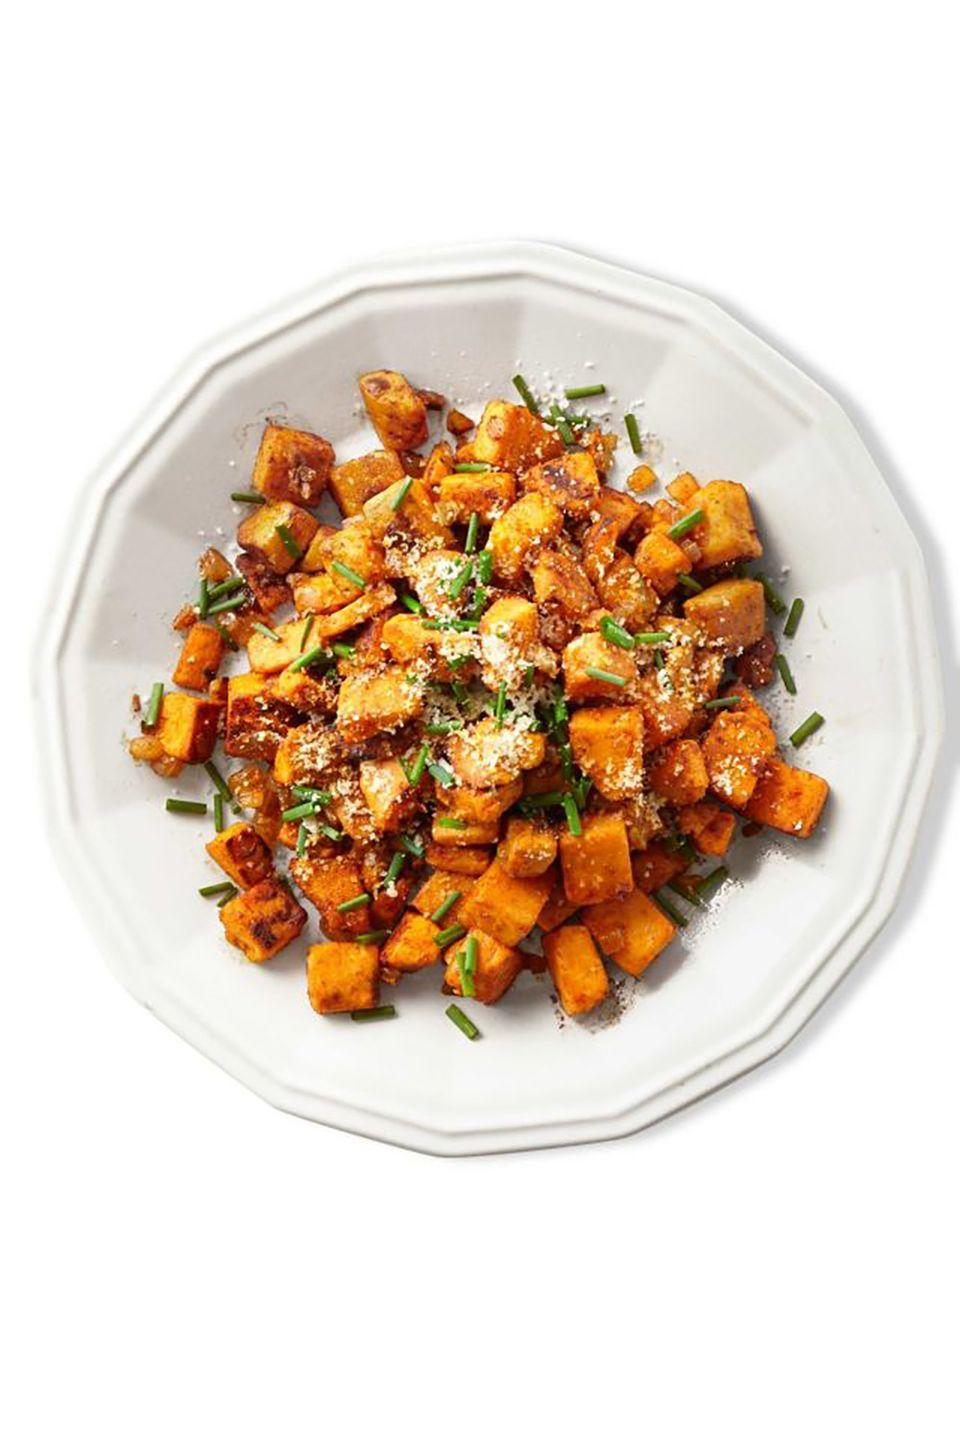 """<p>Serve up these savory smoky hash as a side for breakfast, lunch, <em>or </em>dinner.</p><p><strong><a href=""""https://www.countryliving.com/food-drinks/recipes/a39376/sweet-potato-hash-recipe/"""" rel=""""nofollow noopener"""" target=""""_blank"""" data-ylk=""""slk:Get the recipe"""" class=""""link rapid-noclick-resp"""">Get the recipe</a>.</strong><br></p><p><a class=""""link rapid-noclick-resp"""" href=""""https://www.amazon.com/T-fal-Specialty-Nonstick-Dishwasher-Cookware/dp/B000EM9PTQ?tag=syn-yahoo-20&ascsubtag=%5Bartid%7C10050.g.877%5Bsrc%7Cyahoo-us"""" rel=""""nofollow noopener"""" target=""""_blank"""" data-ylk=""""slk:SHOP SKILLETS"""">SHOP SKILLETS</a></p>"""